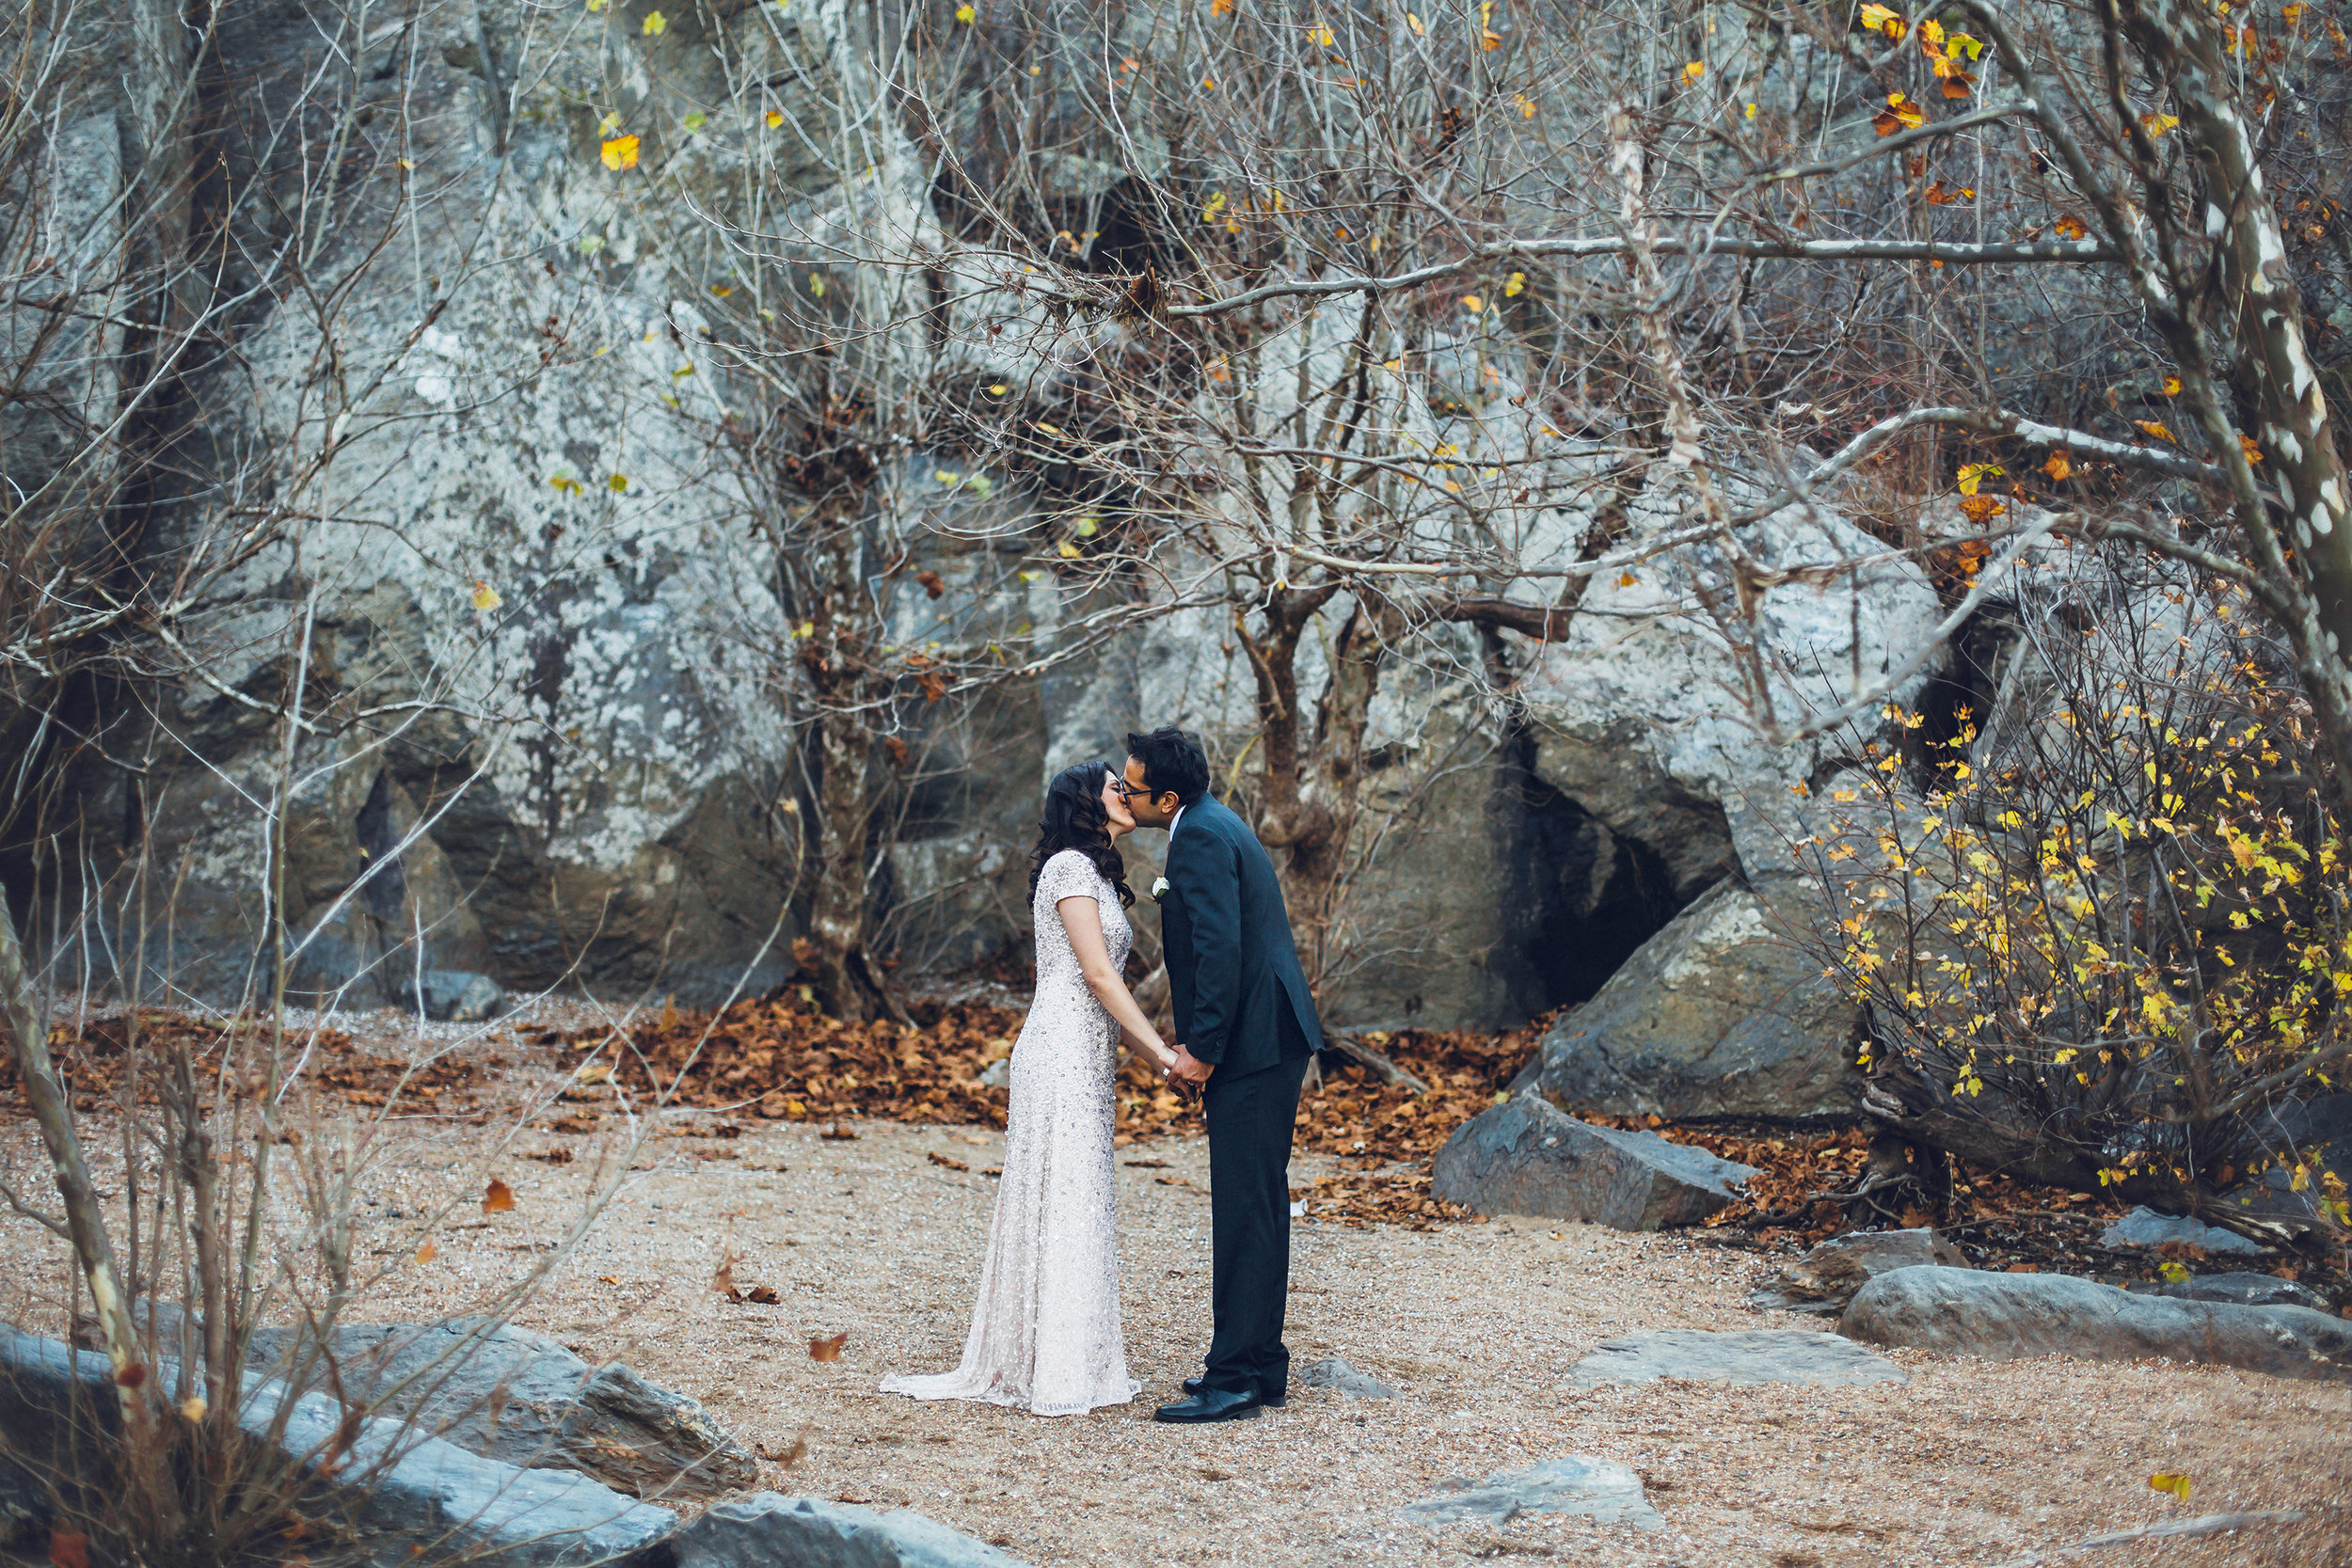 Brooklyn NYC Wedding Photographer Boris Zaretsky Elopement in Great Falls Park Virginia-203 copy.jpg